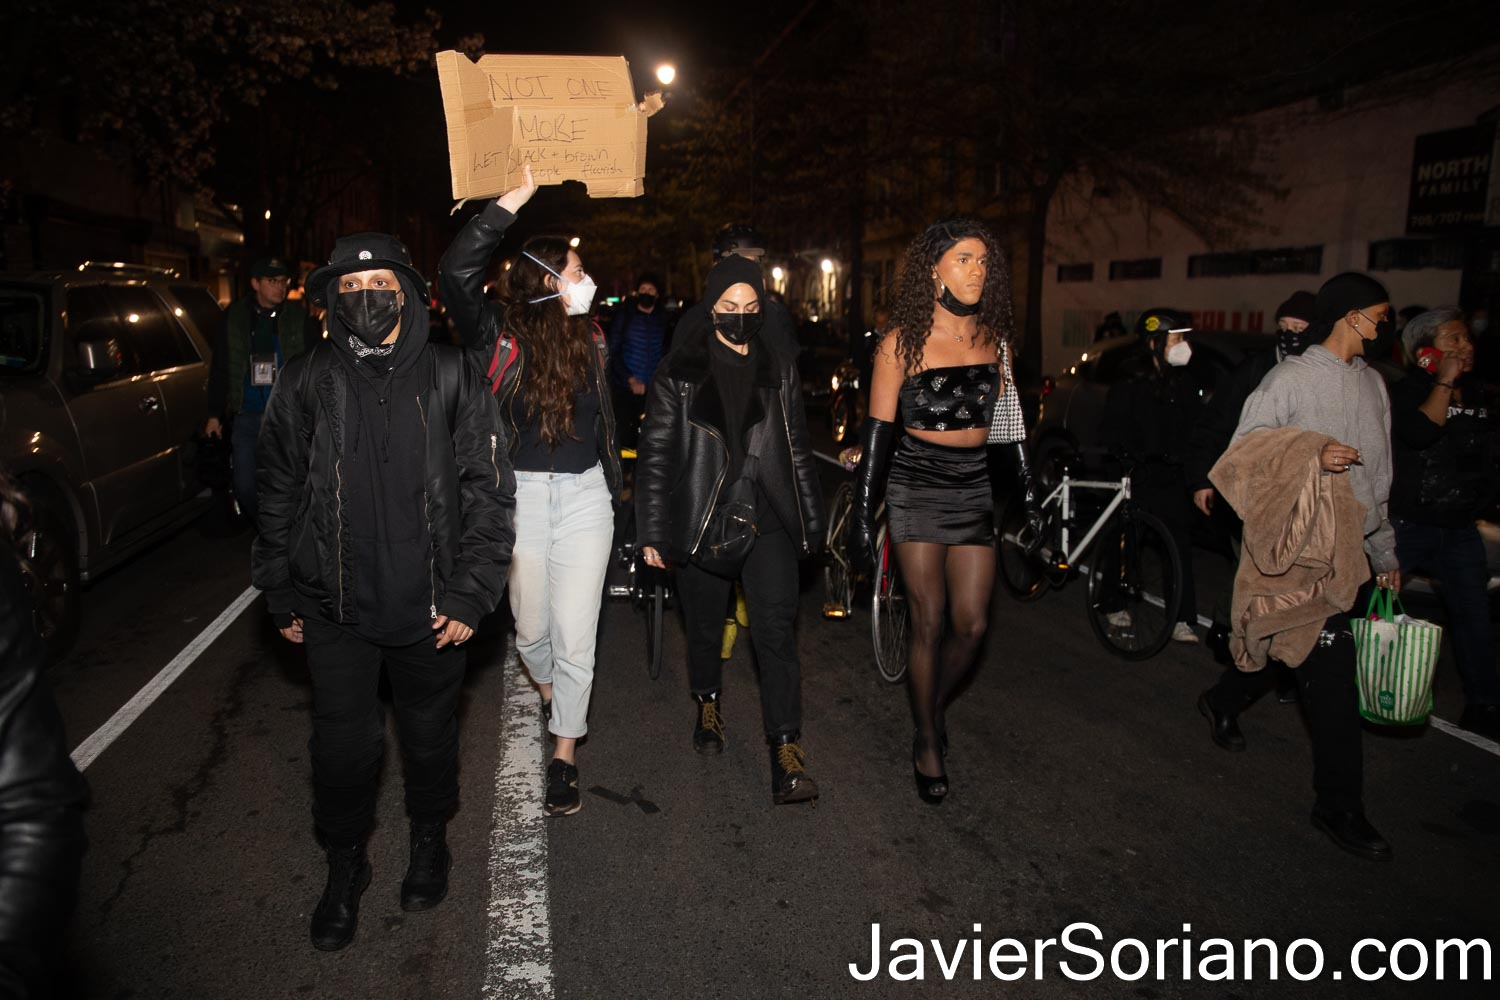 Friday, April 16, 2021. Brooklyn, New York City – The group Mexicanos Unidos and other activists gathered at Barclays Center in Brooklyn to demand justice for Adam Toledo. After the rally, peaceful protesters marched through different streets in Brooklyn. One of the demonstrators was Trans activist Joel Rivera. On Monday, March 29, 2021, Chicago police officer, Eric Stillman murdered Adam Toledo. Adam was a 13 years-old Latino boy. Photo by Javier Soriano/www.JavierSoriano.com